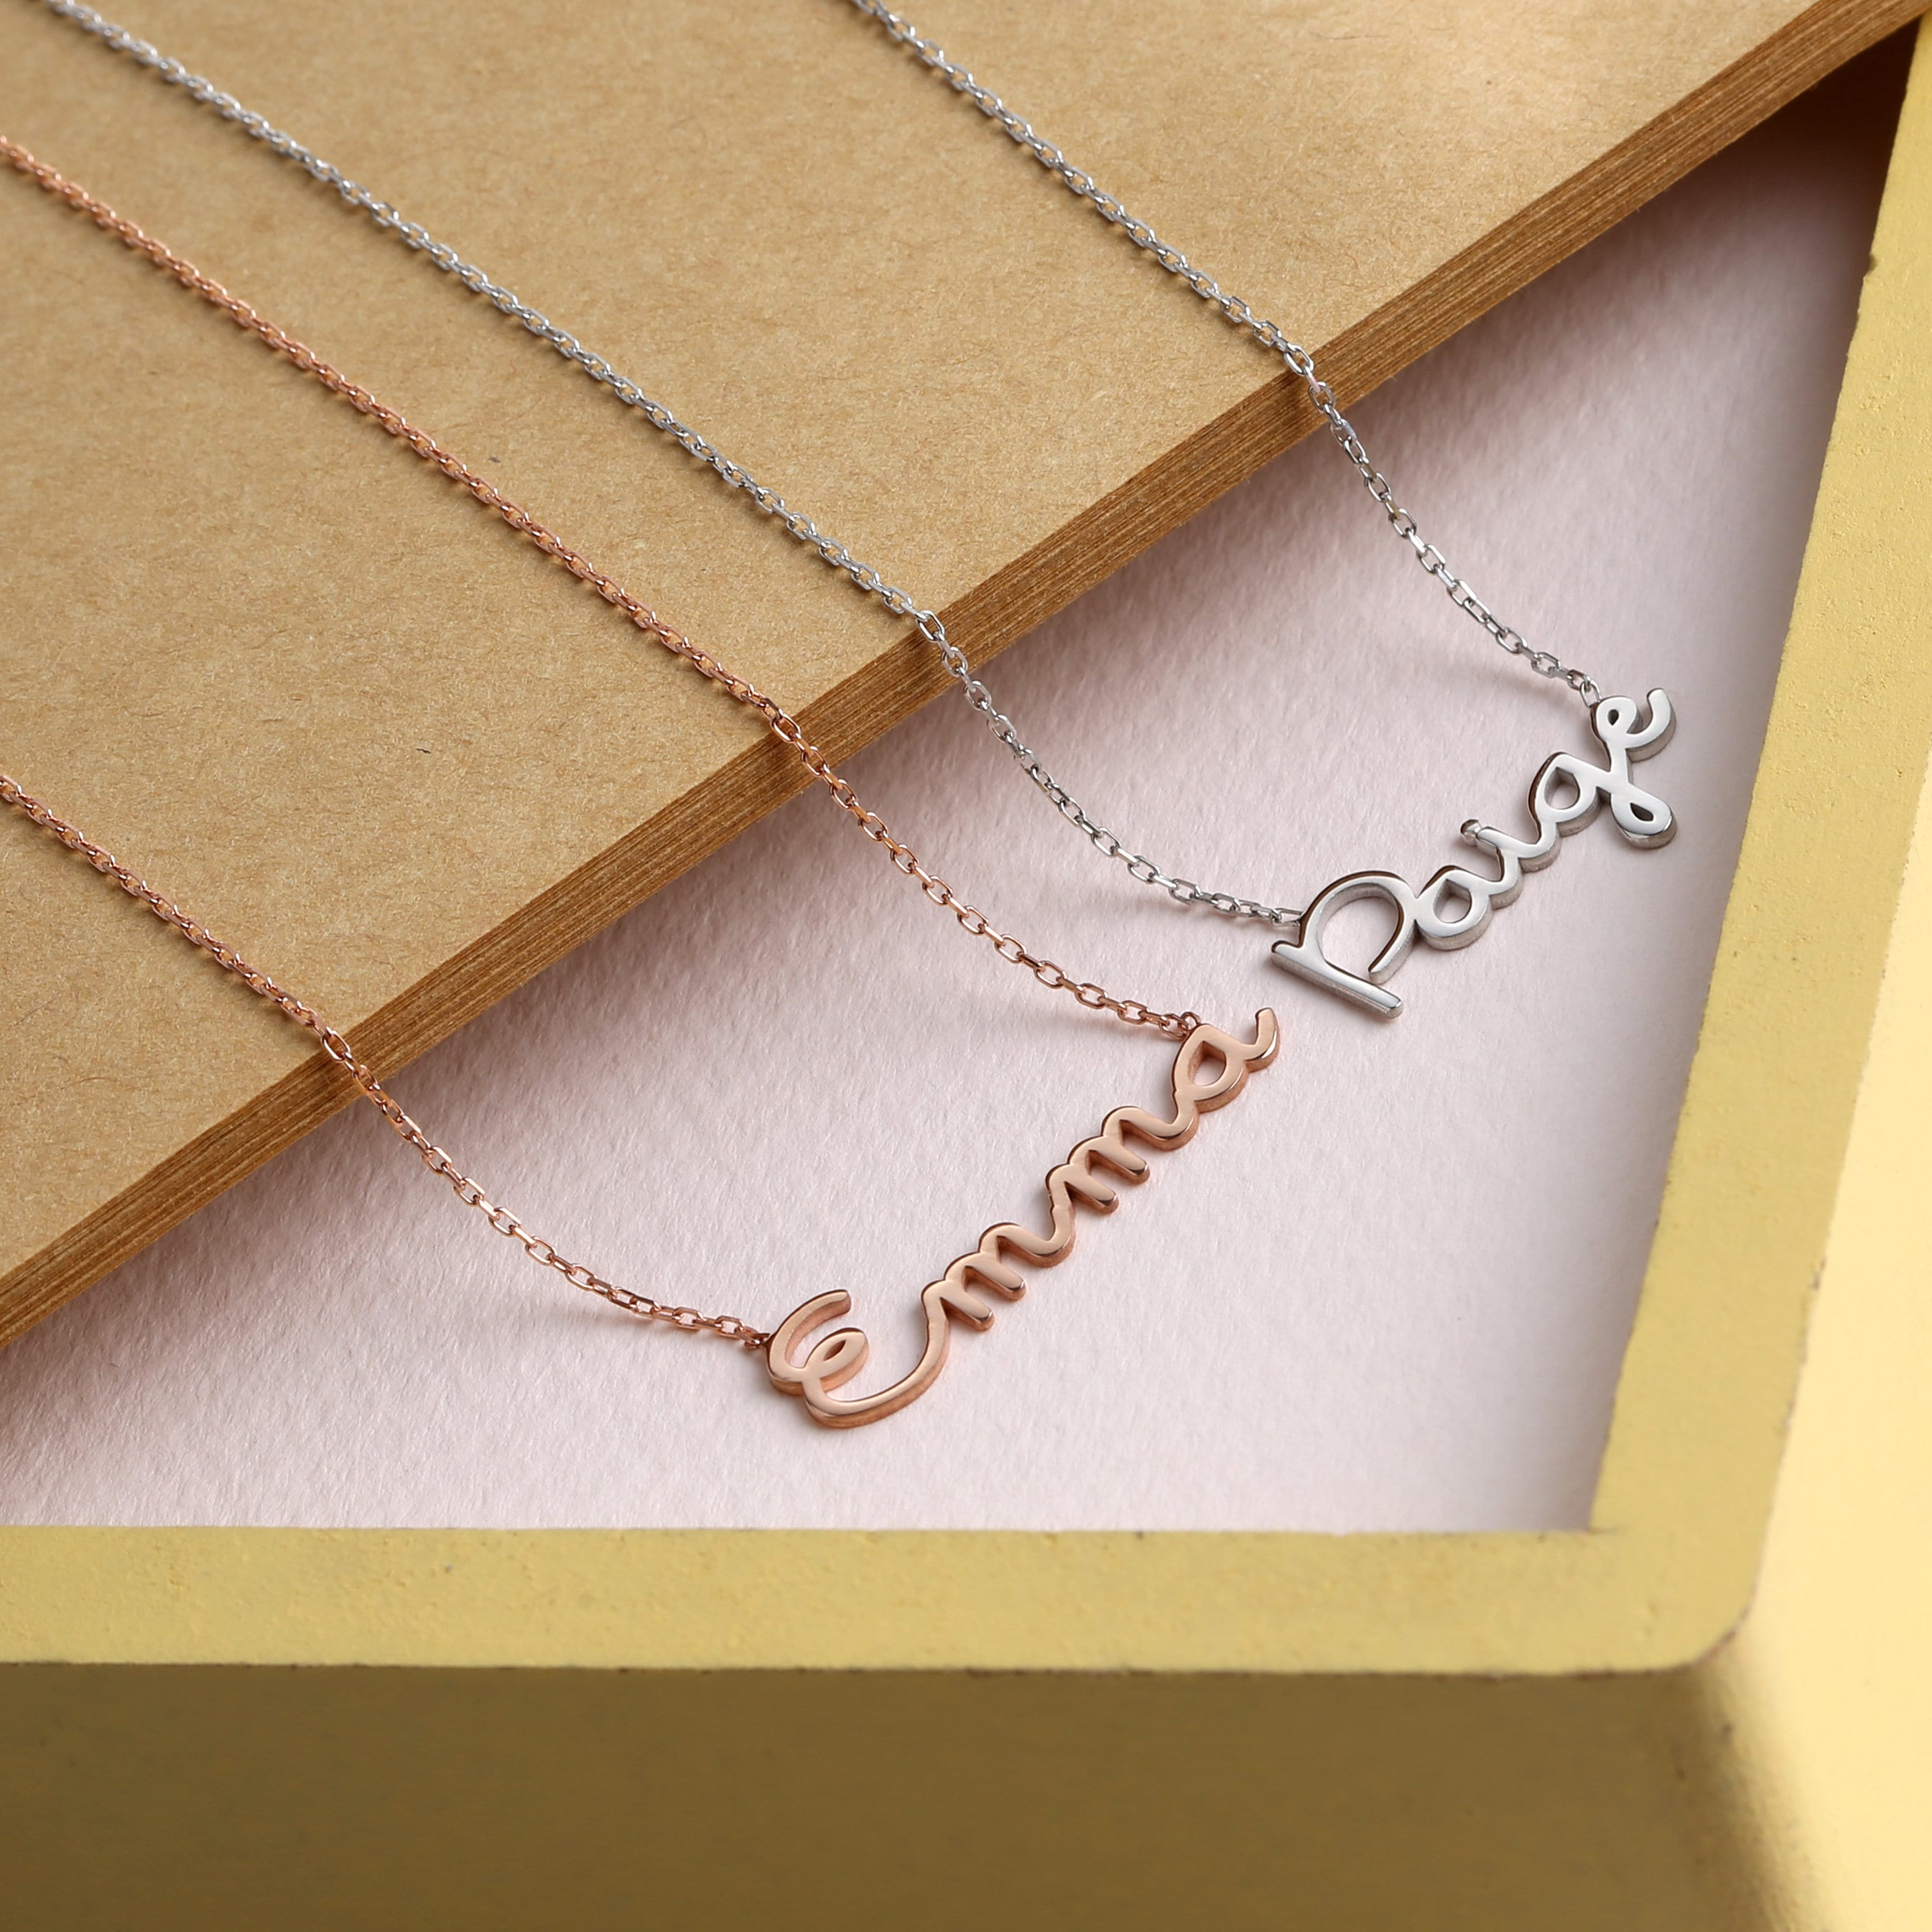 Personalized Name Necklace Gold Name Necklace Silver Custom image 1